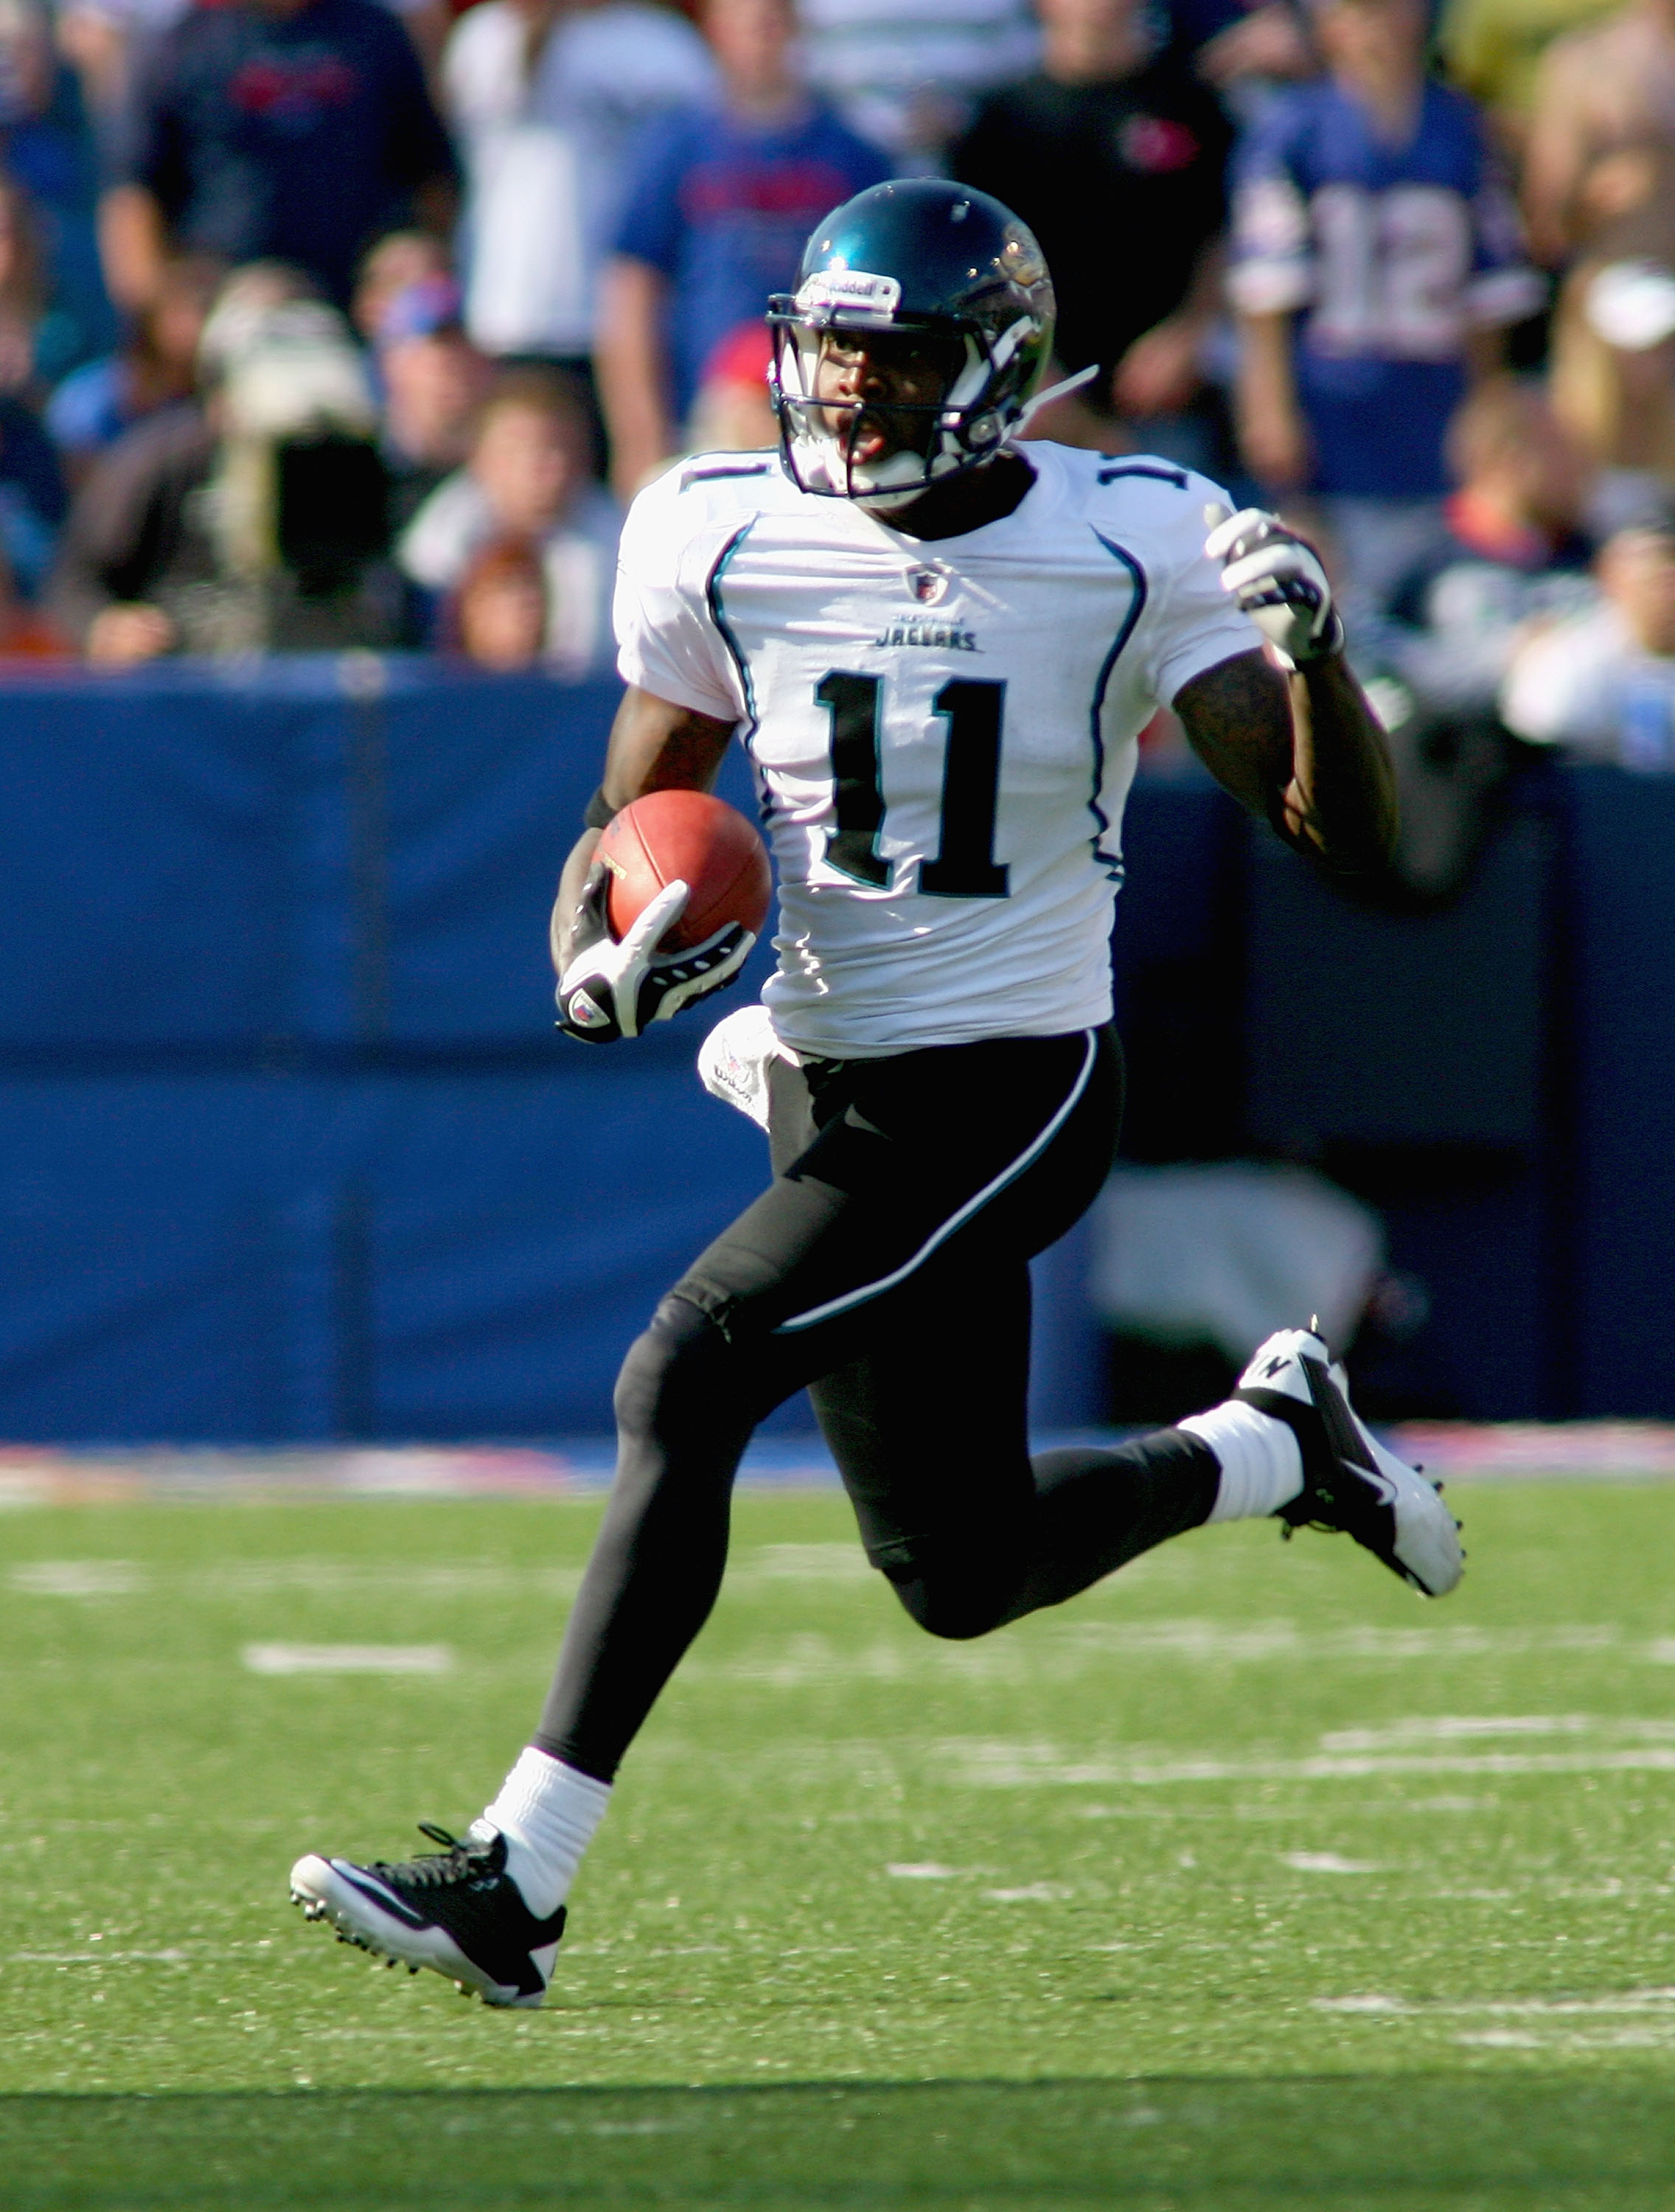 ORCHARD PARK, NY - OCTOBER 10: Mike Sims-Walker #11 of the Jacksonville Jaguars runs after a catch against the Buffalo Bills at Ralph Wilson Stadium on October 10, 2010 in Orchard Park, New York. Jacksonville won 36-26. (Photo by Rick Stewart/Getty Images